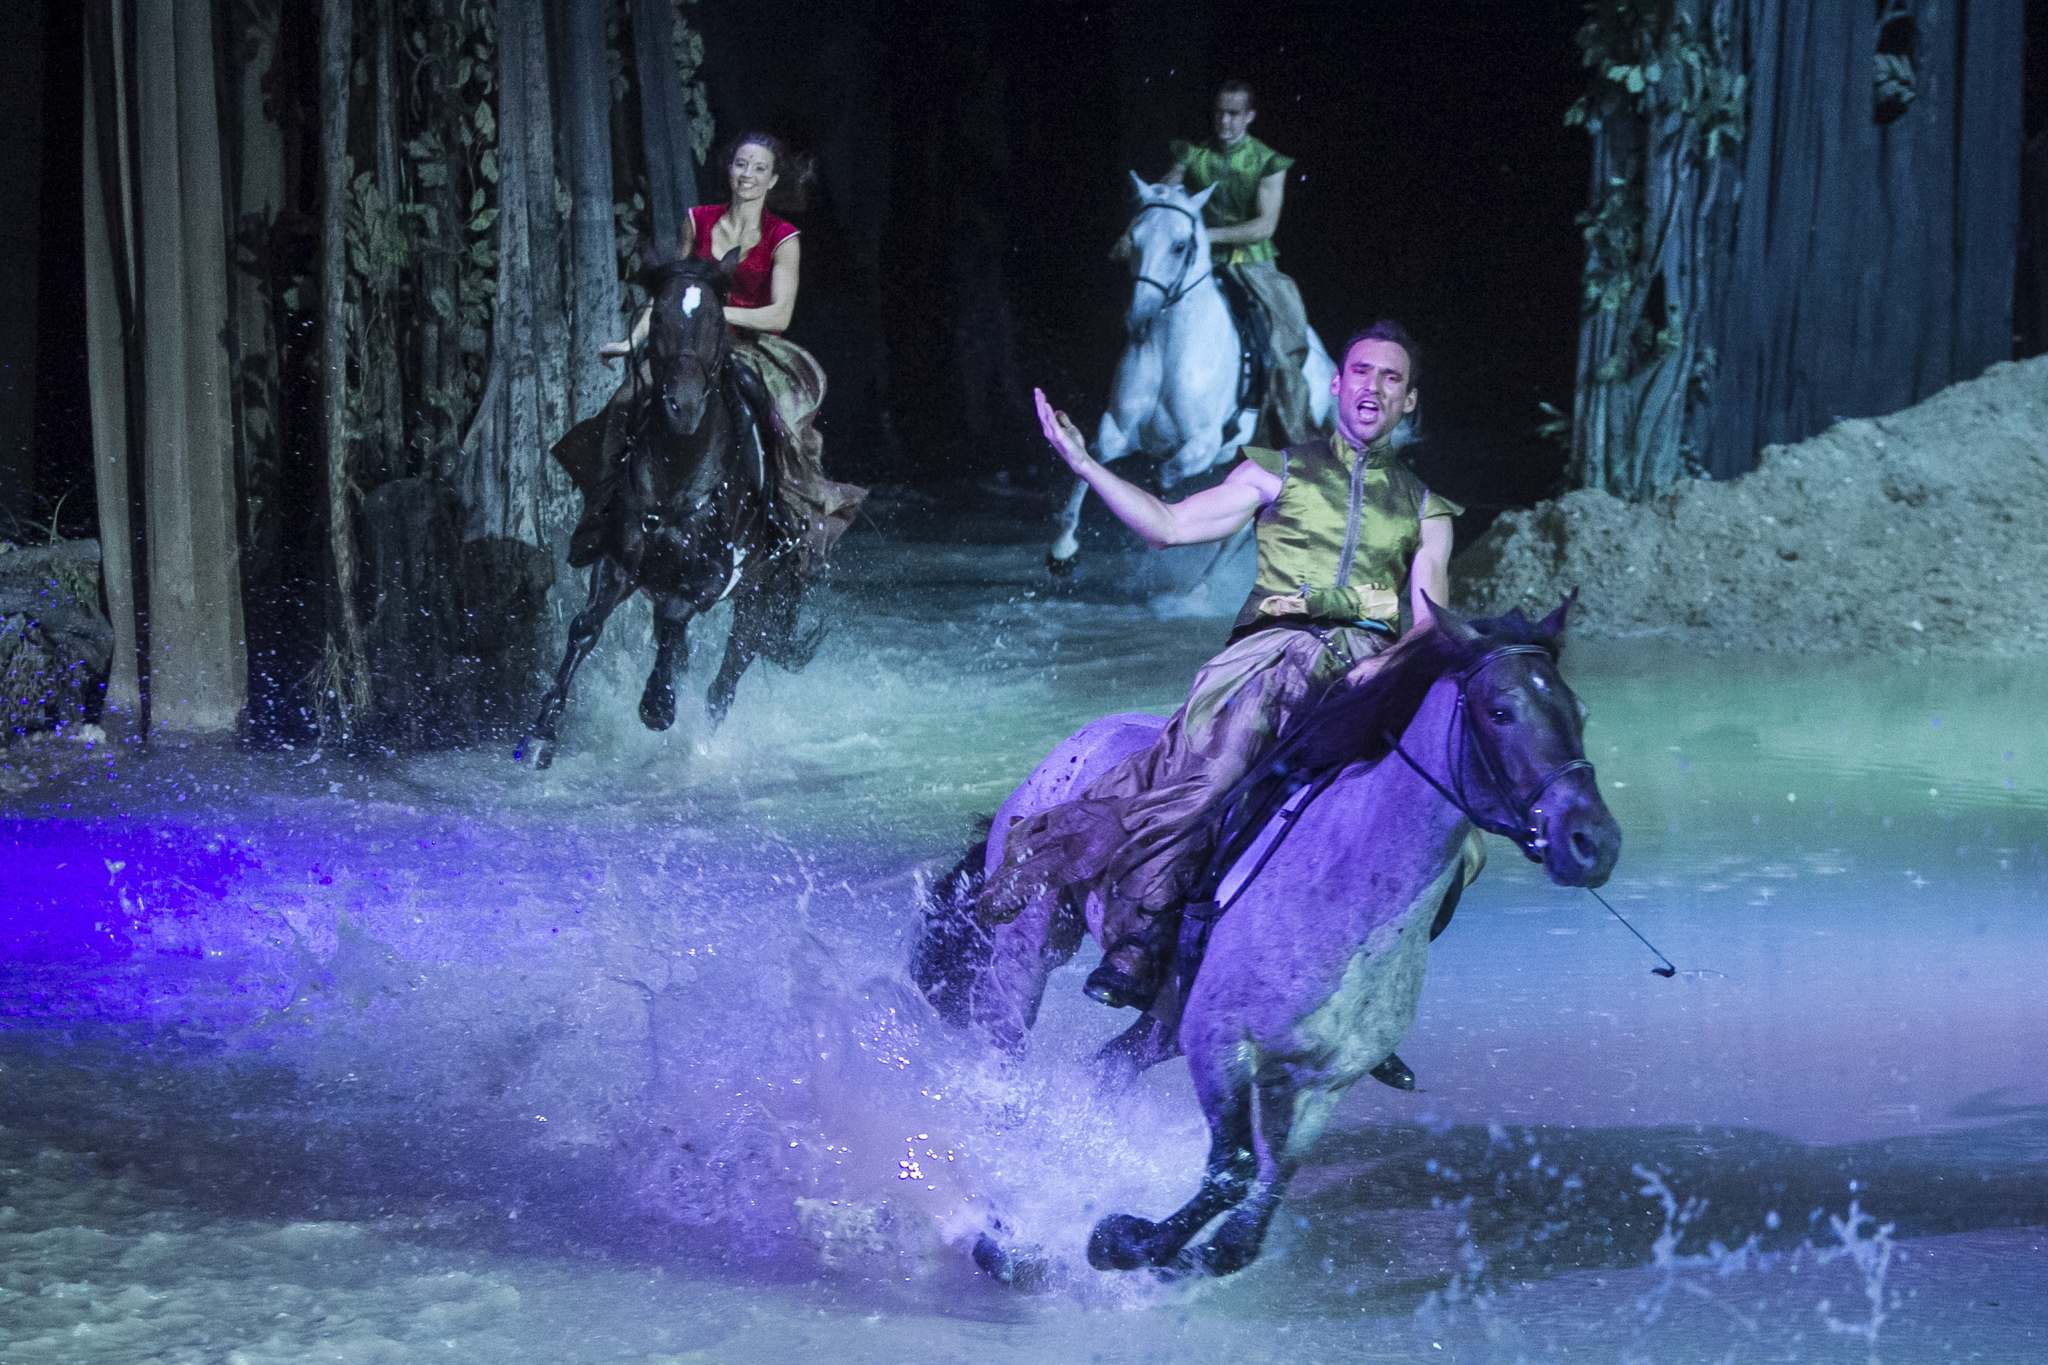 MIKE DEAL / WINNIPEG FREE PRESS</p><p>More than 100,000 tickets were sold for Cavalia Odysseo when it hit Winnipeg in 2015, and sales for next May&rsquo;s return visit have convinced the show to extend its run until June 10.</p>